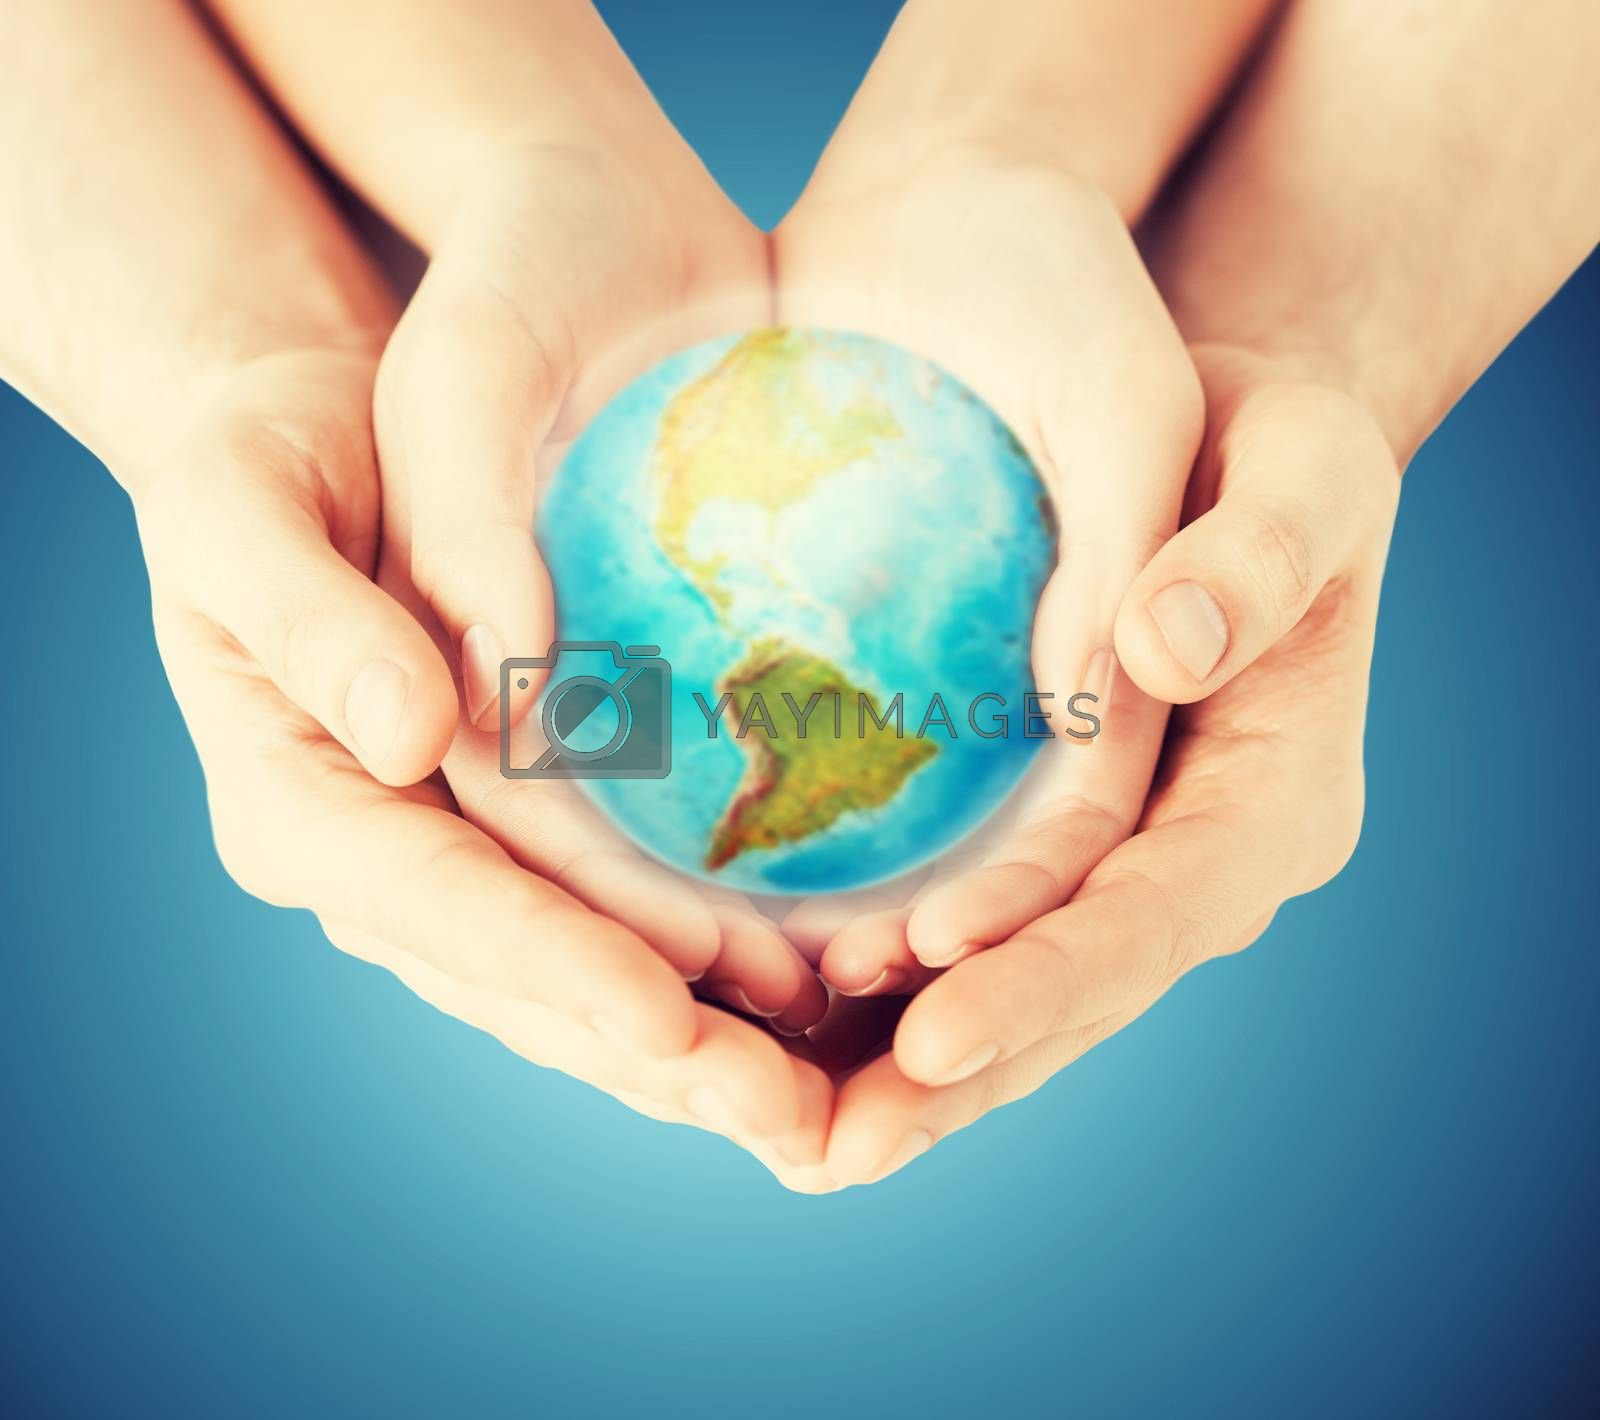 Royalty free image of close up of woman and man hands with earth globe by dolgachov